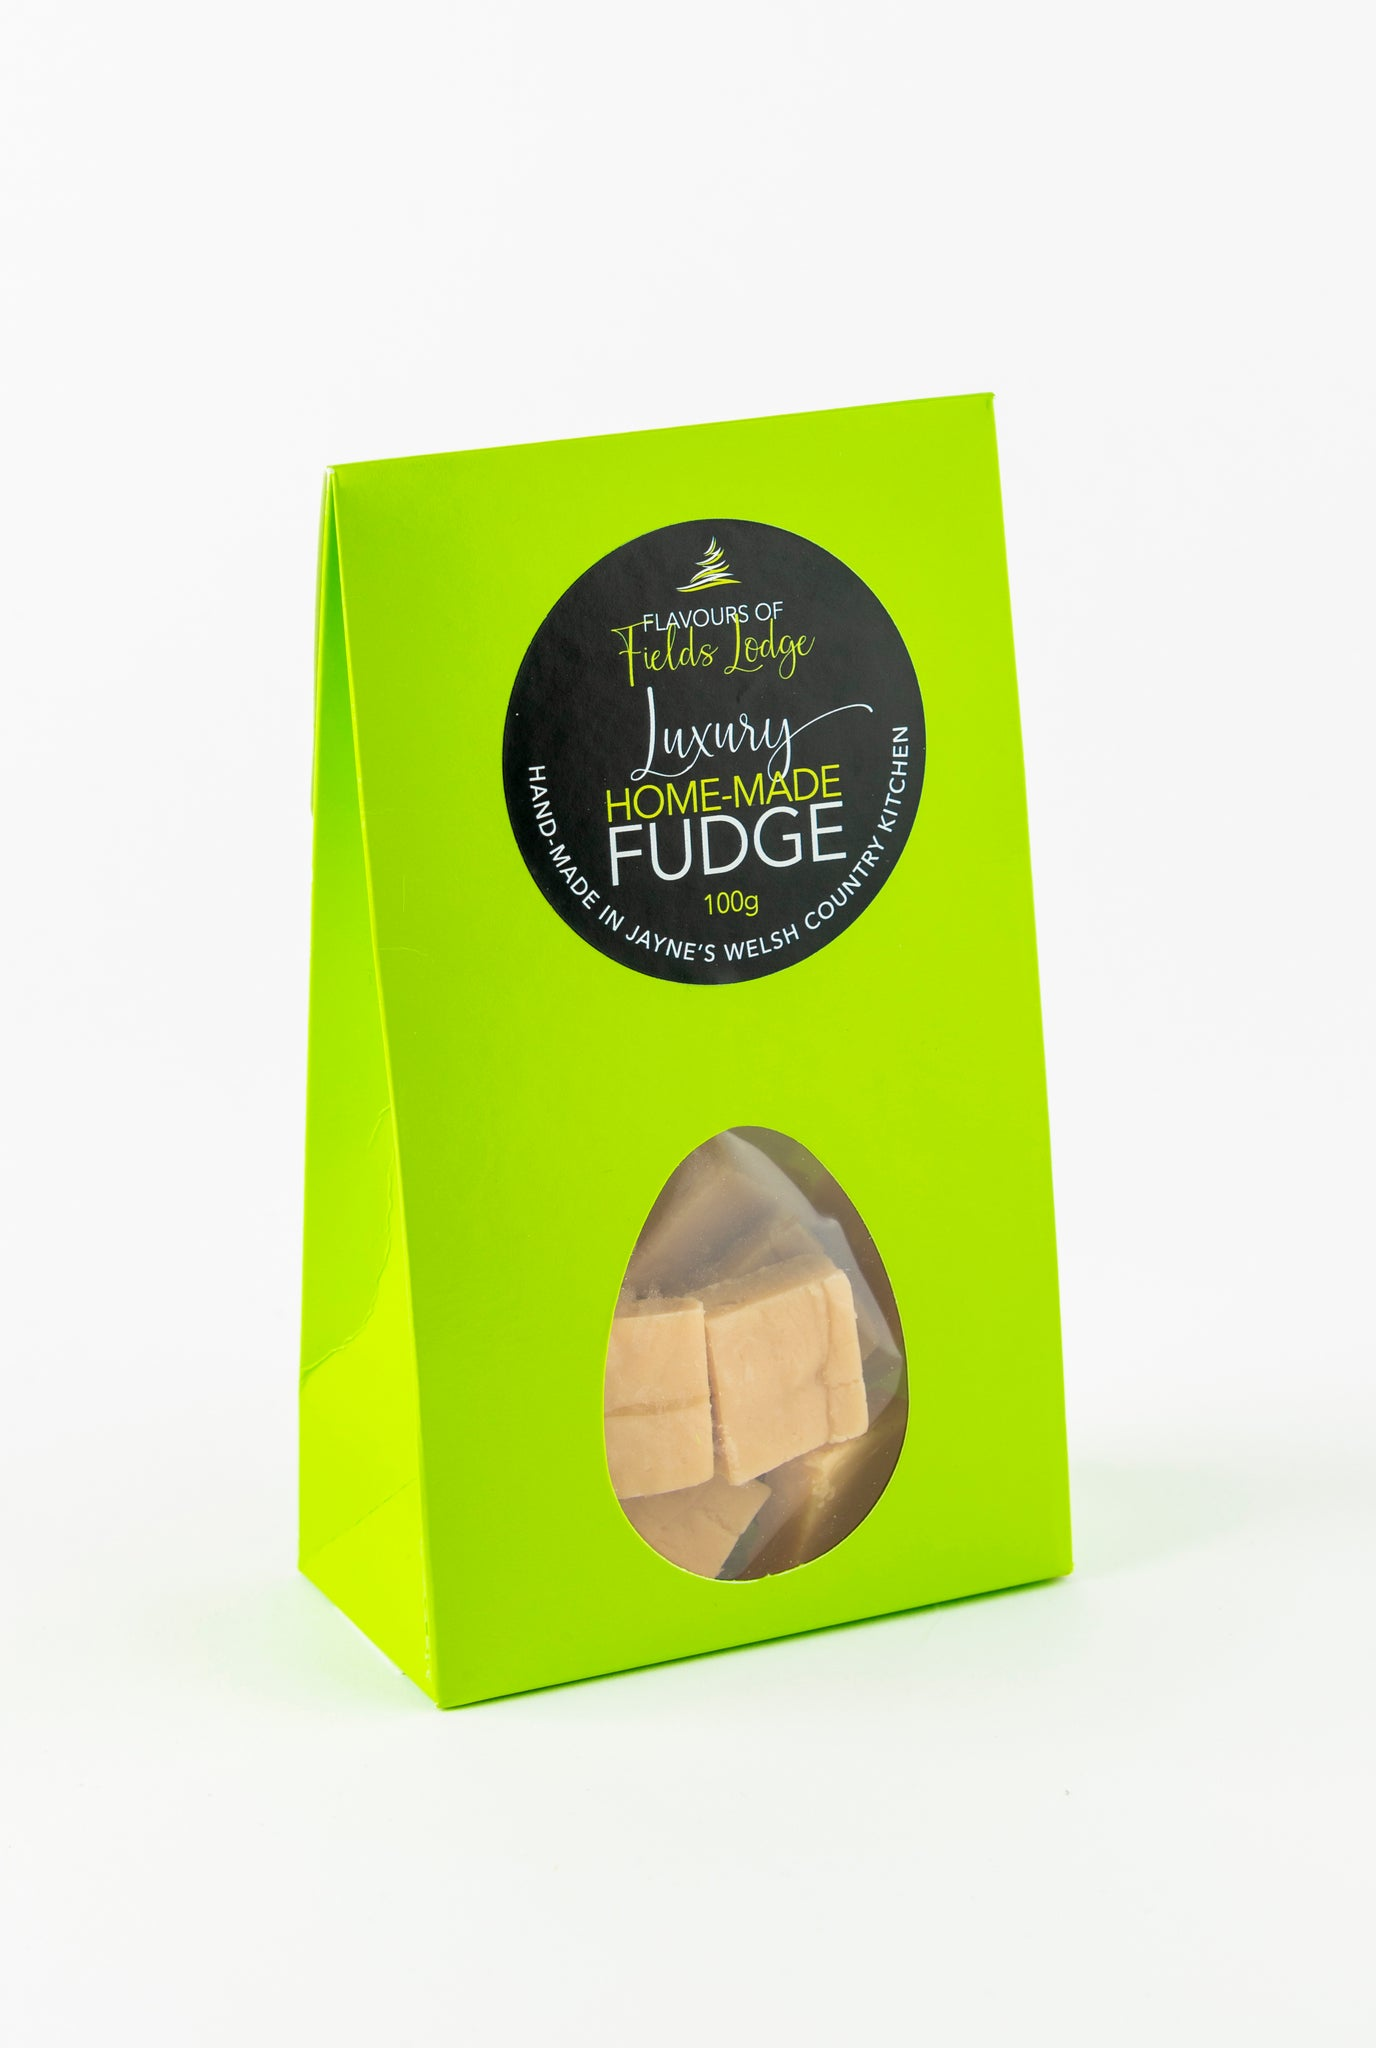 Flavours of Fields Lodge 'Fabulous' Fudge